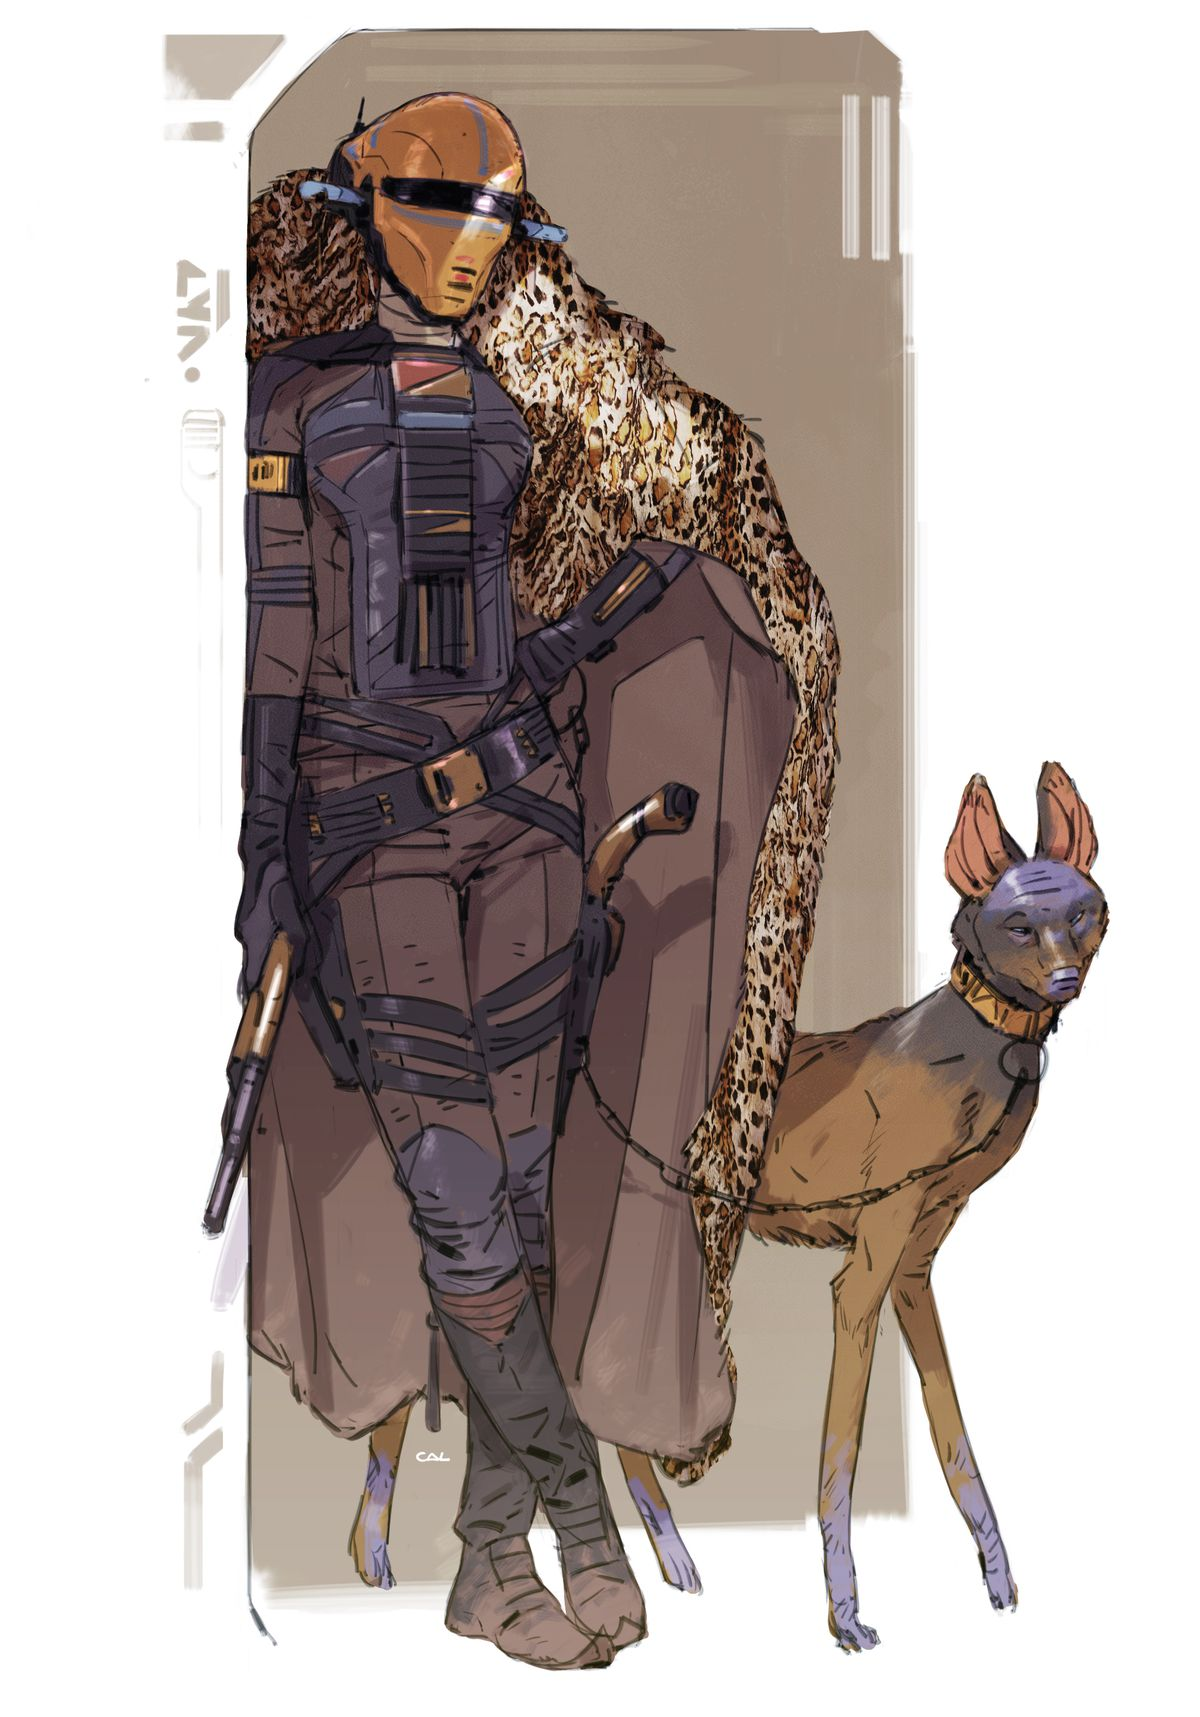 An early version of Zorii Bliss, standing with a leopard-print cape a a lithe, dog-like creature on a slim lead from Star Wars concept art